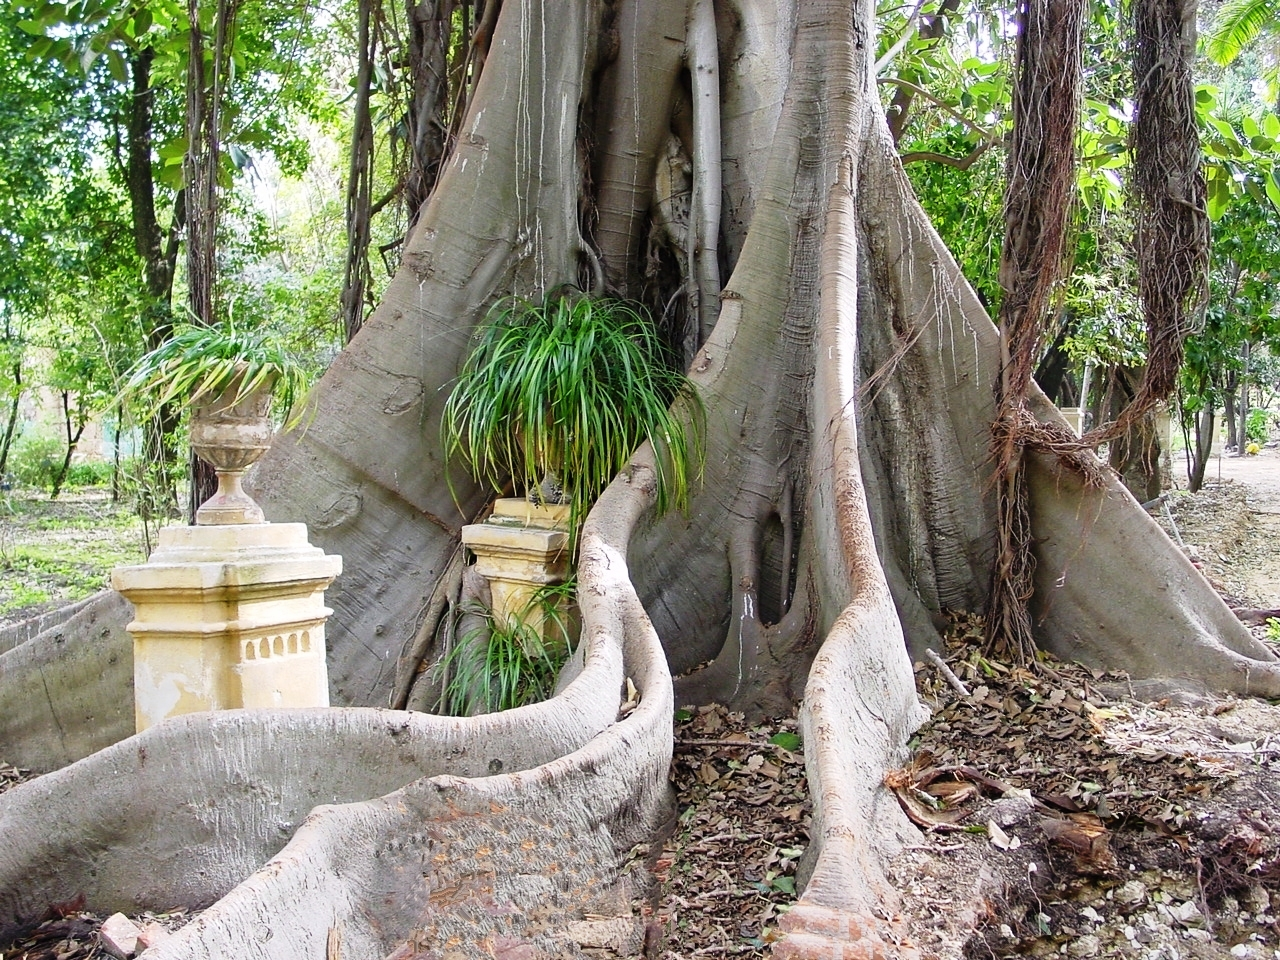 The buttress roots of a  Ficus macrophylla  tree in Paloma. Roots can get seriously large. ( Source )